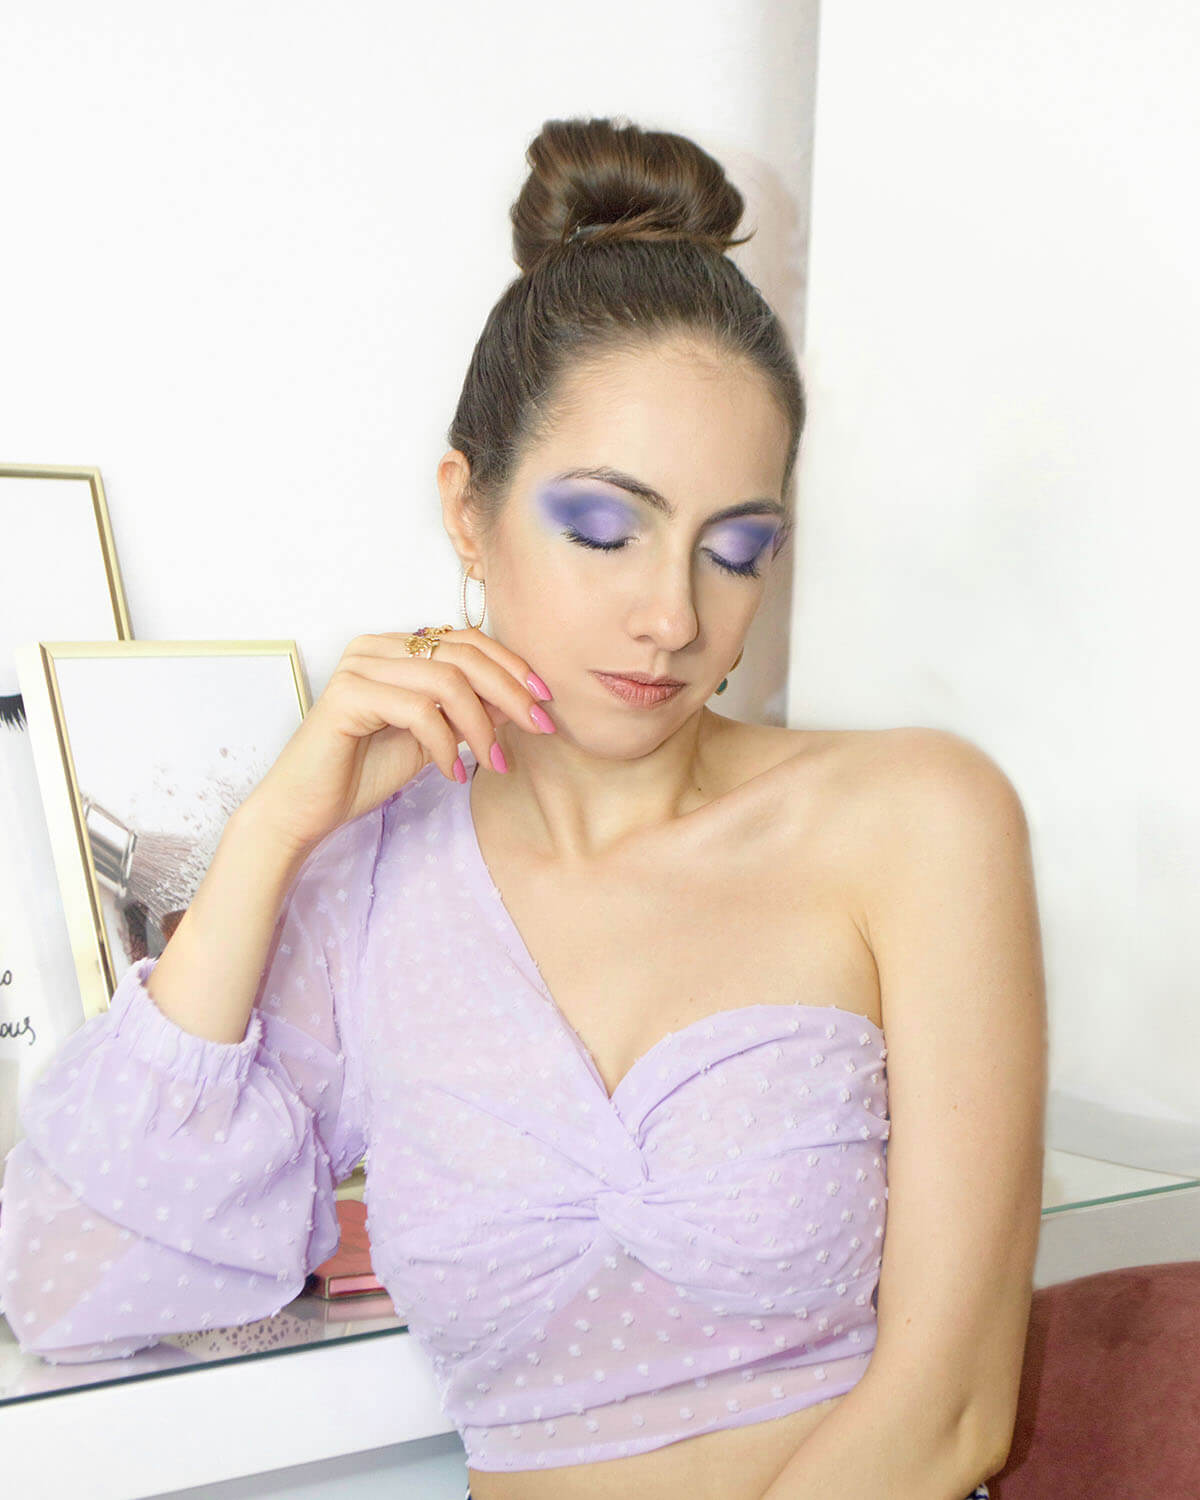 lilac top - Lilifairy review